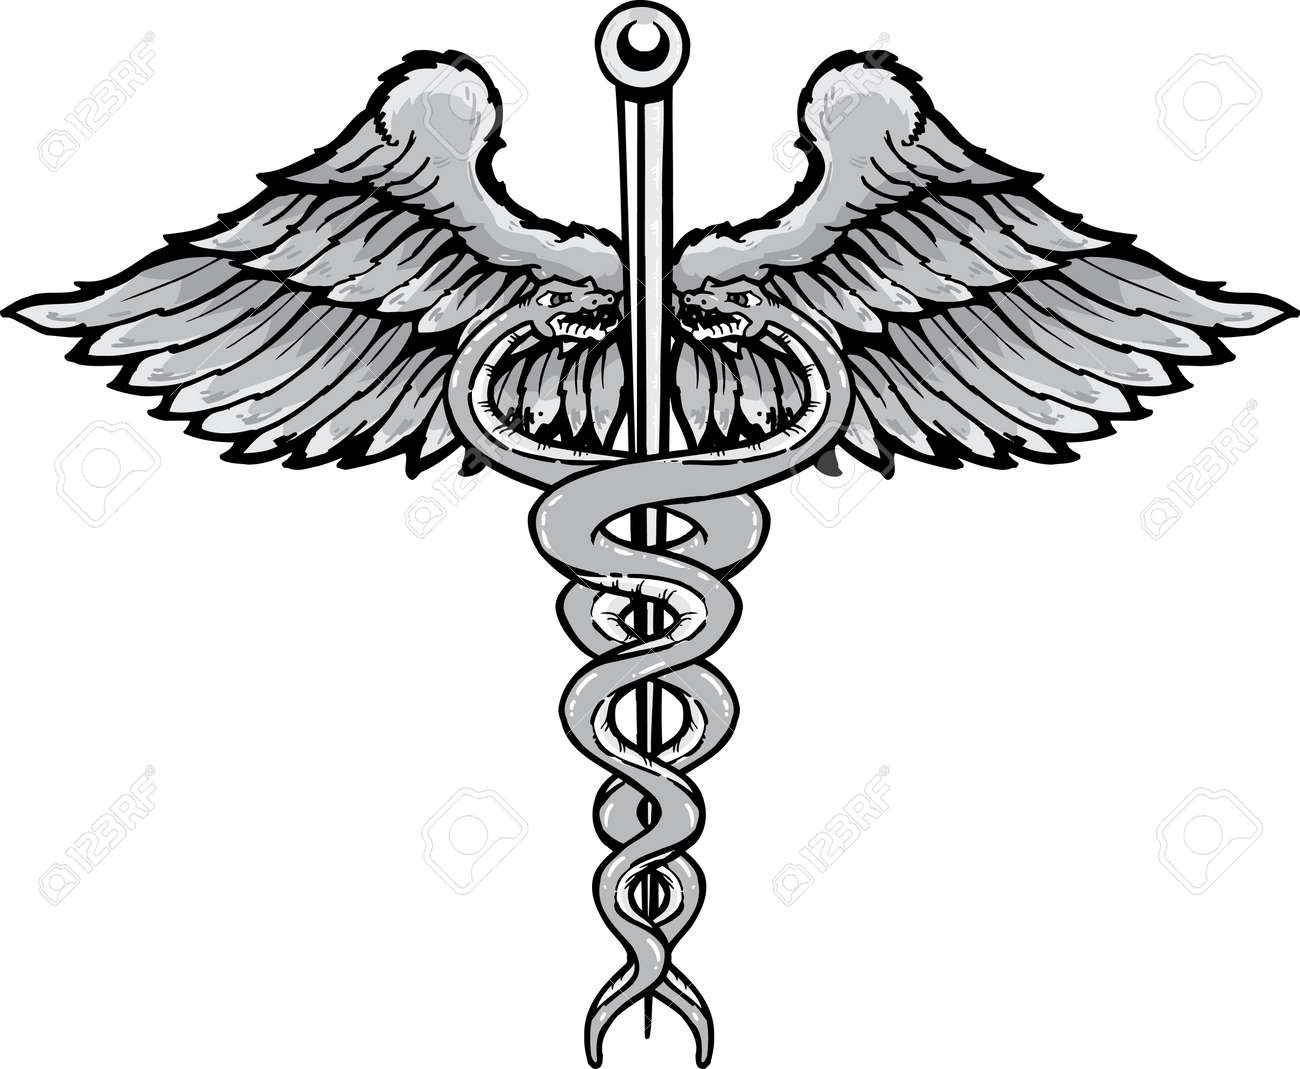 Caduceus the symbol of healing tattoo style vector illustration. Fully editable black and white version. Colour also available Stock Vector - 3889733